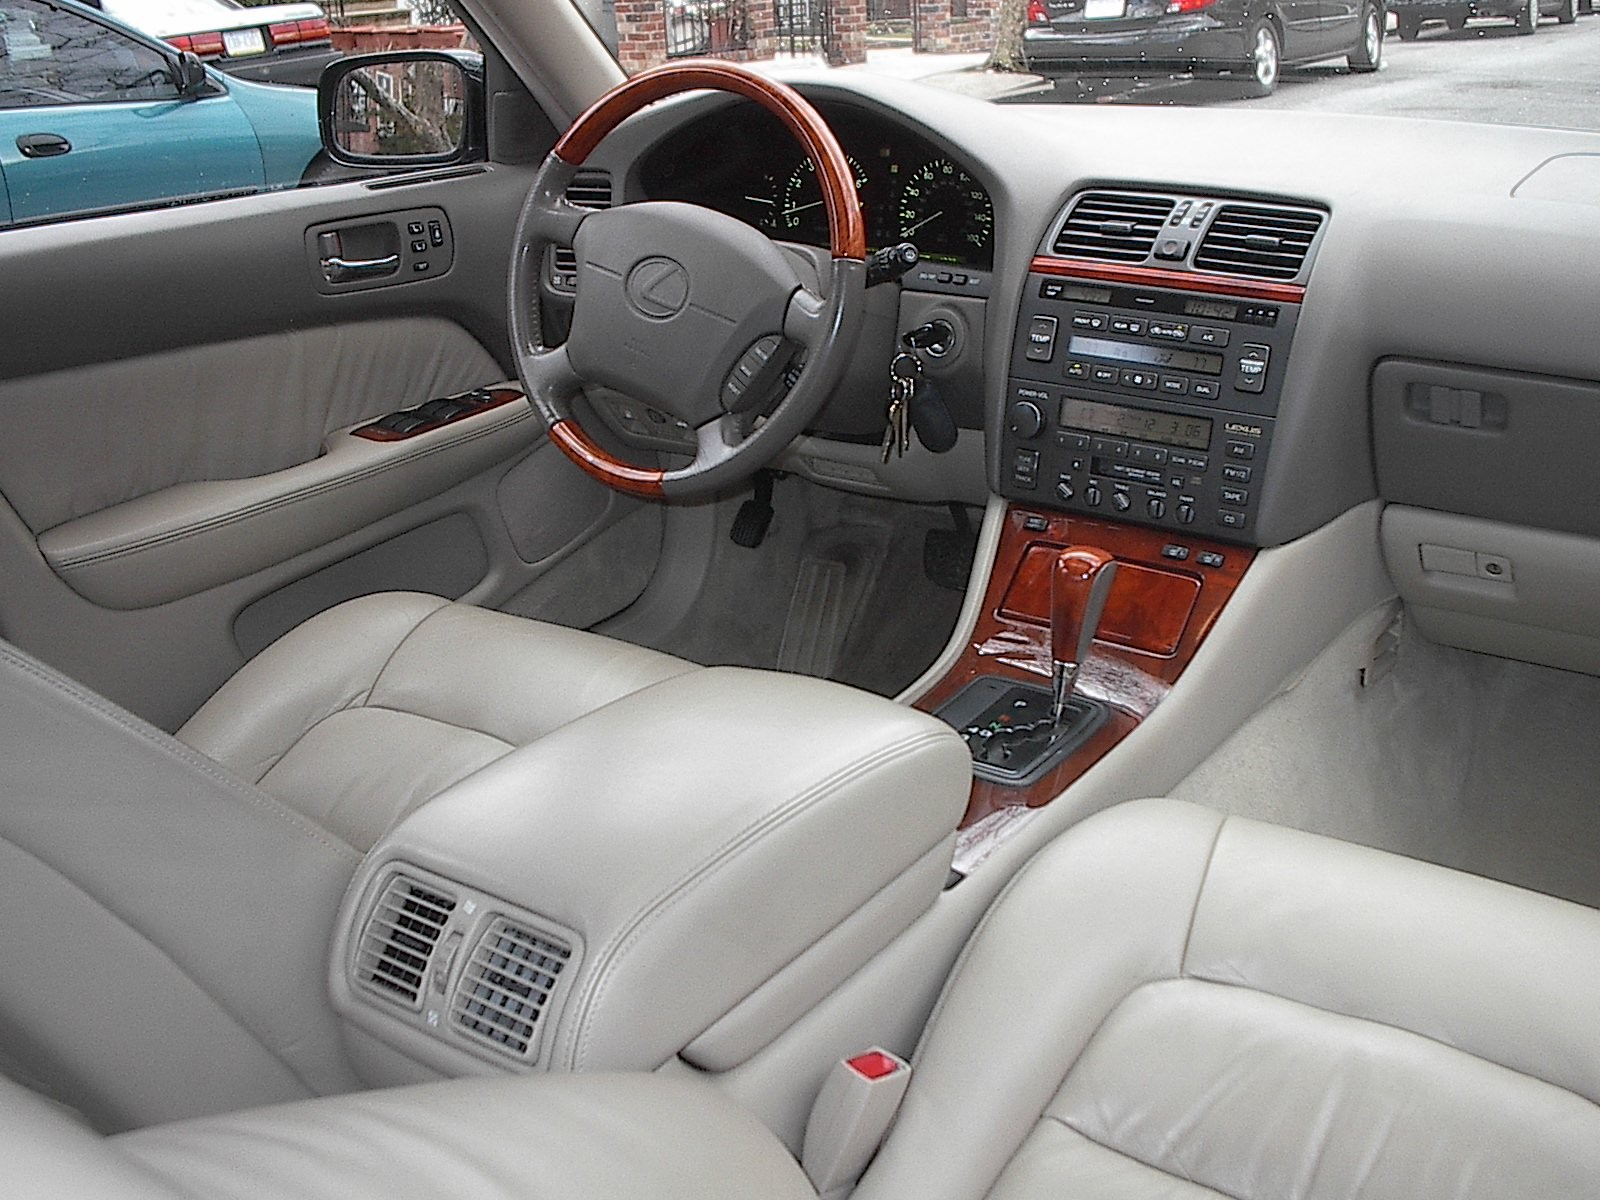 hight resolution of  2000 lexus ls 400 photo 2